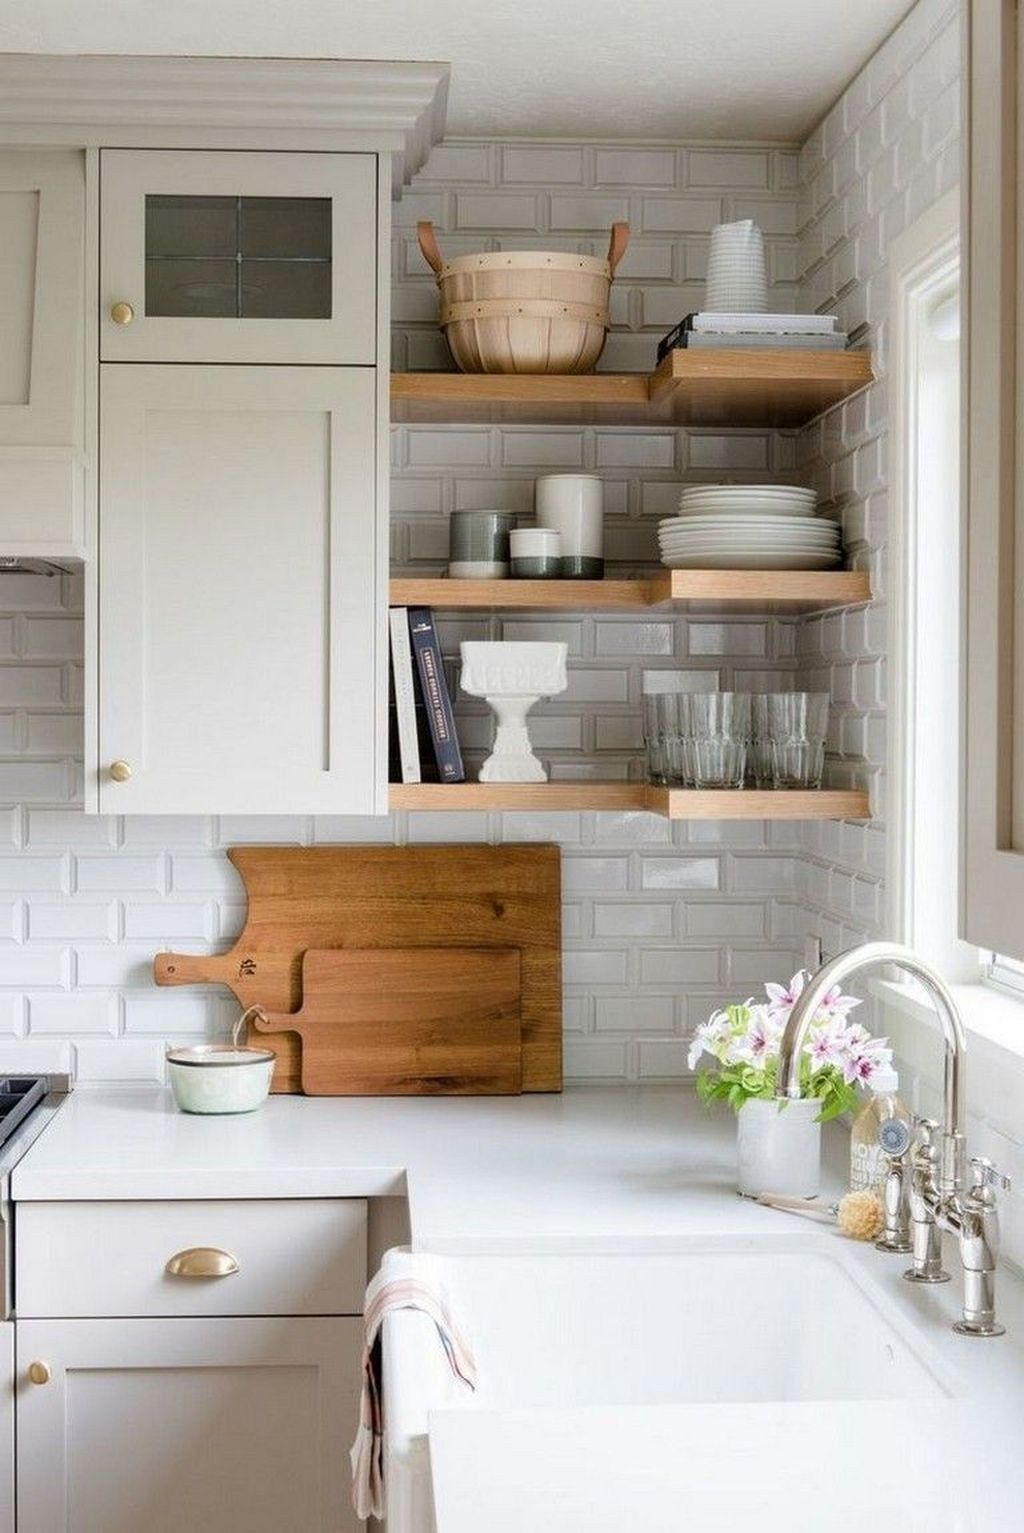 46 Popular Kitchen Remodel On A Budget